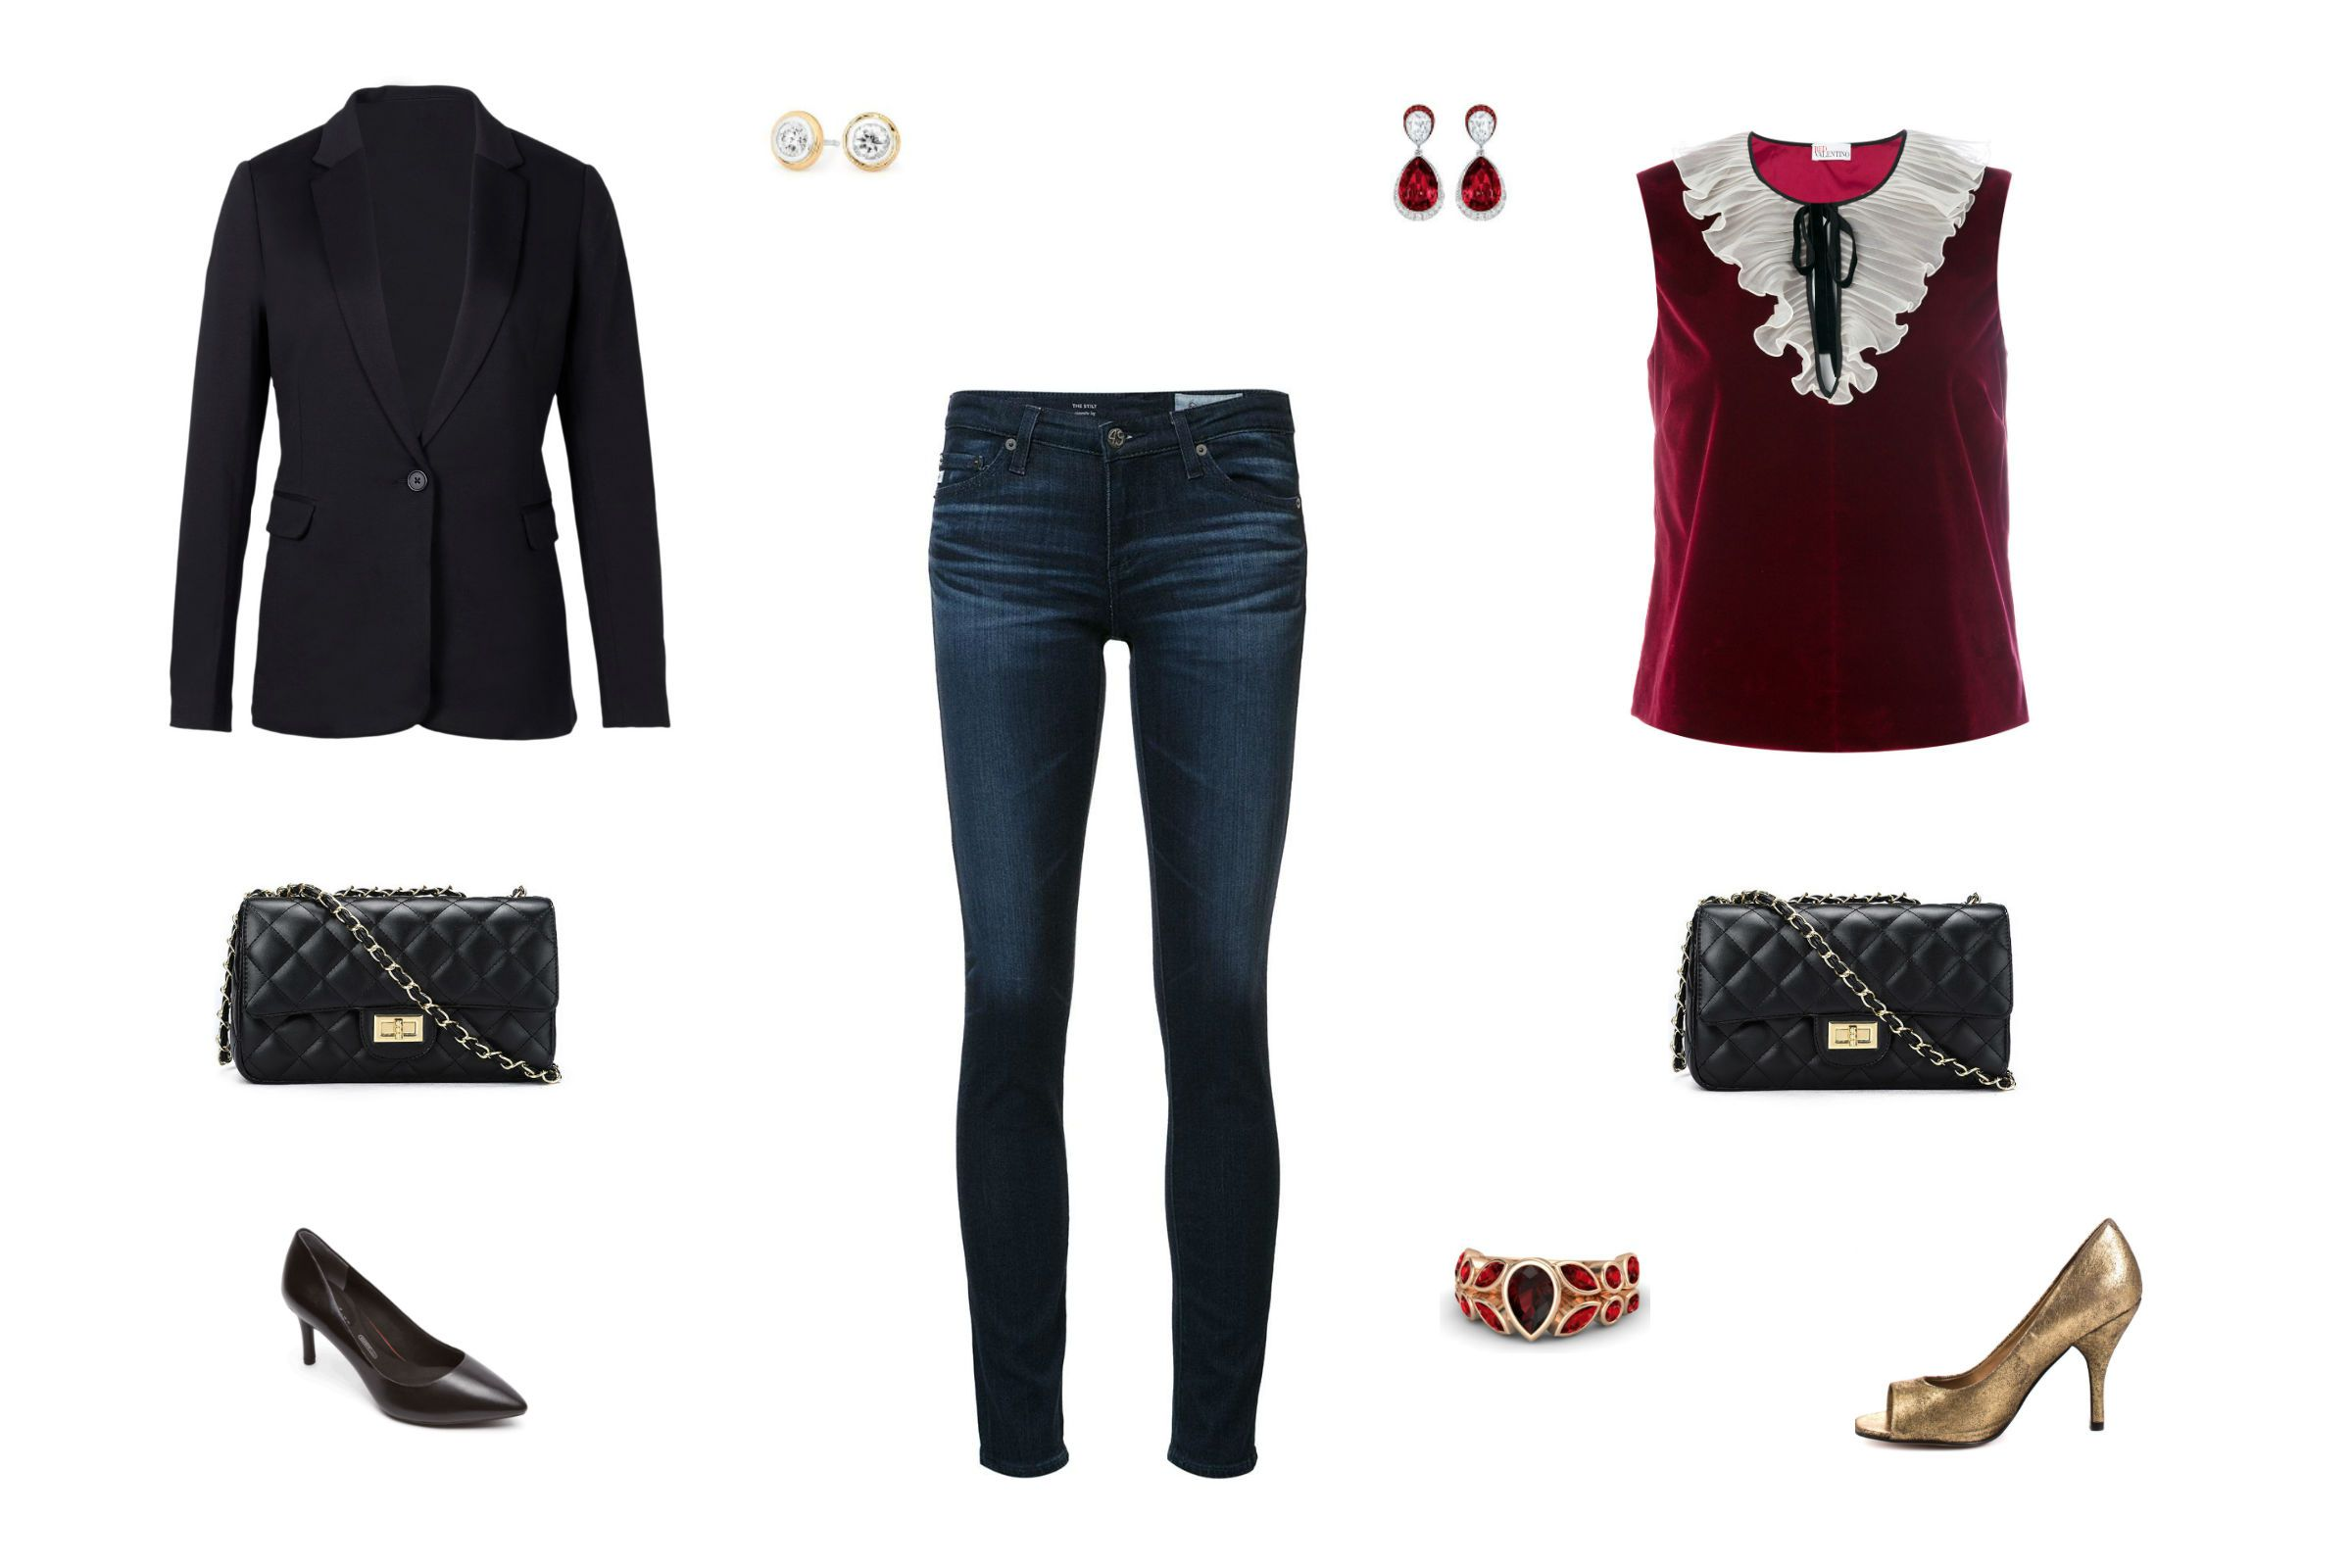 07970bc6b652 10 Ways to Dress Up Jeans for a Night Out